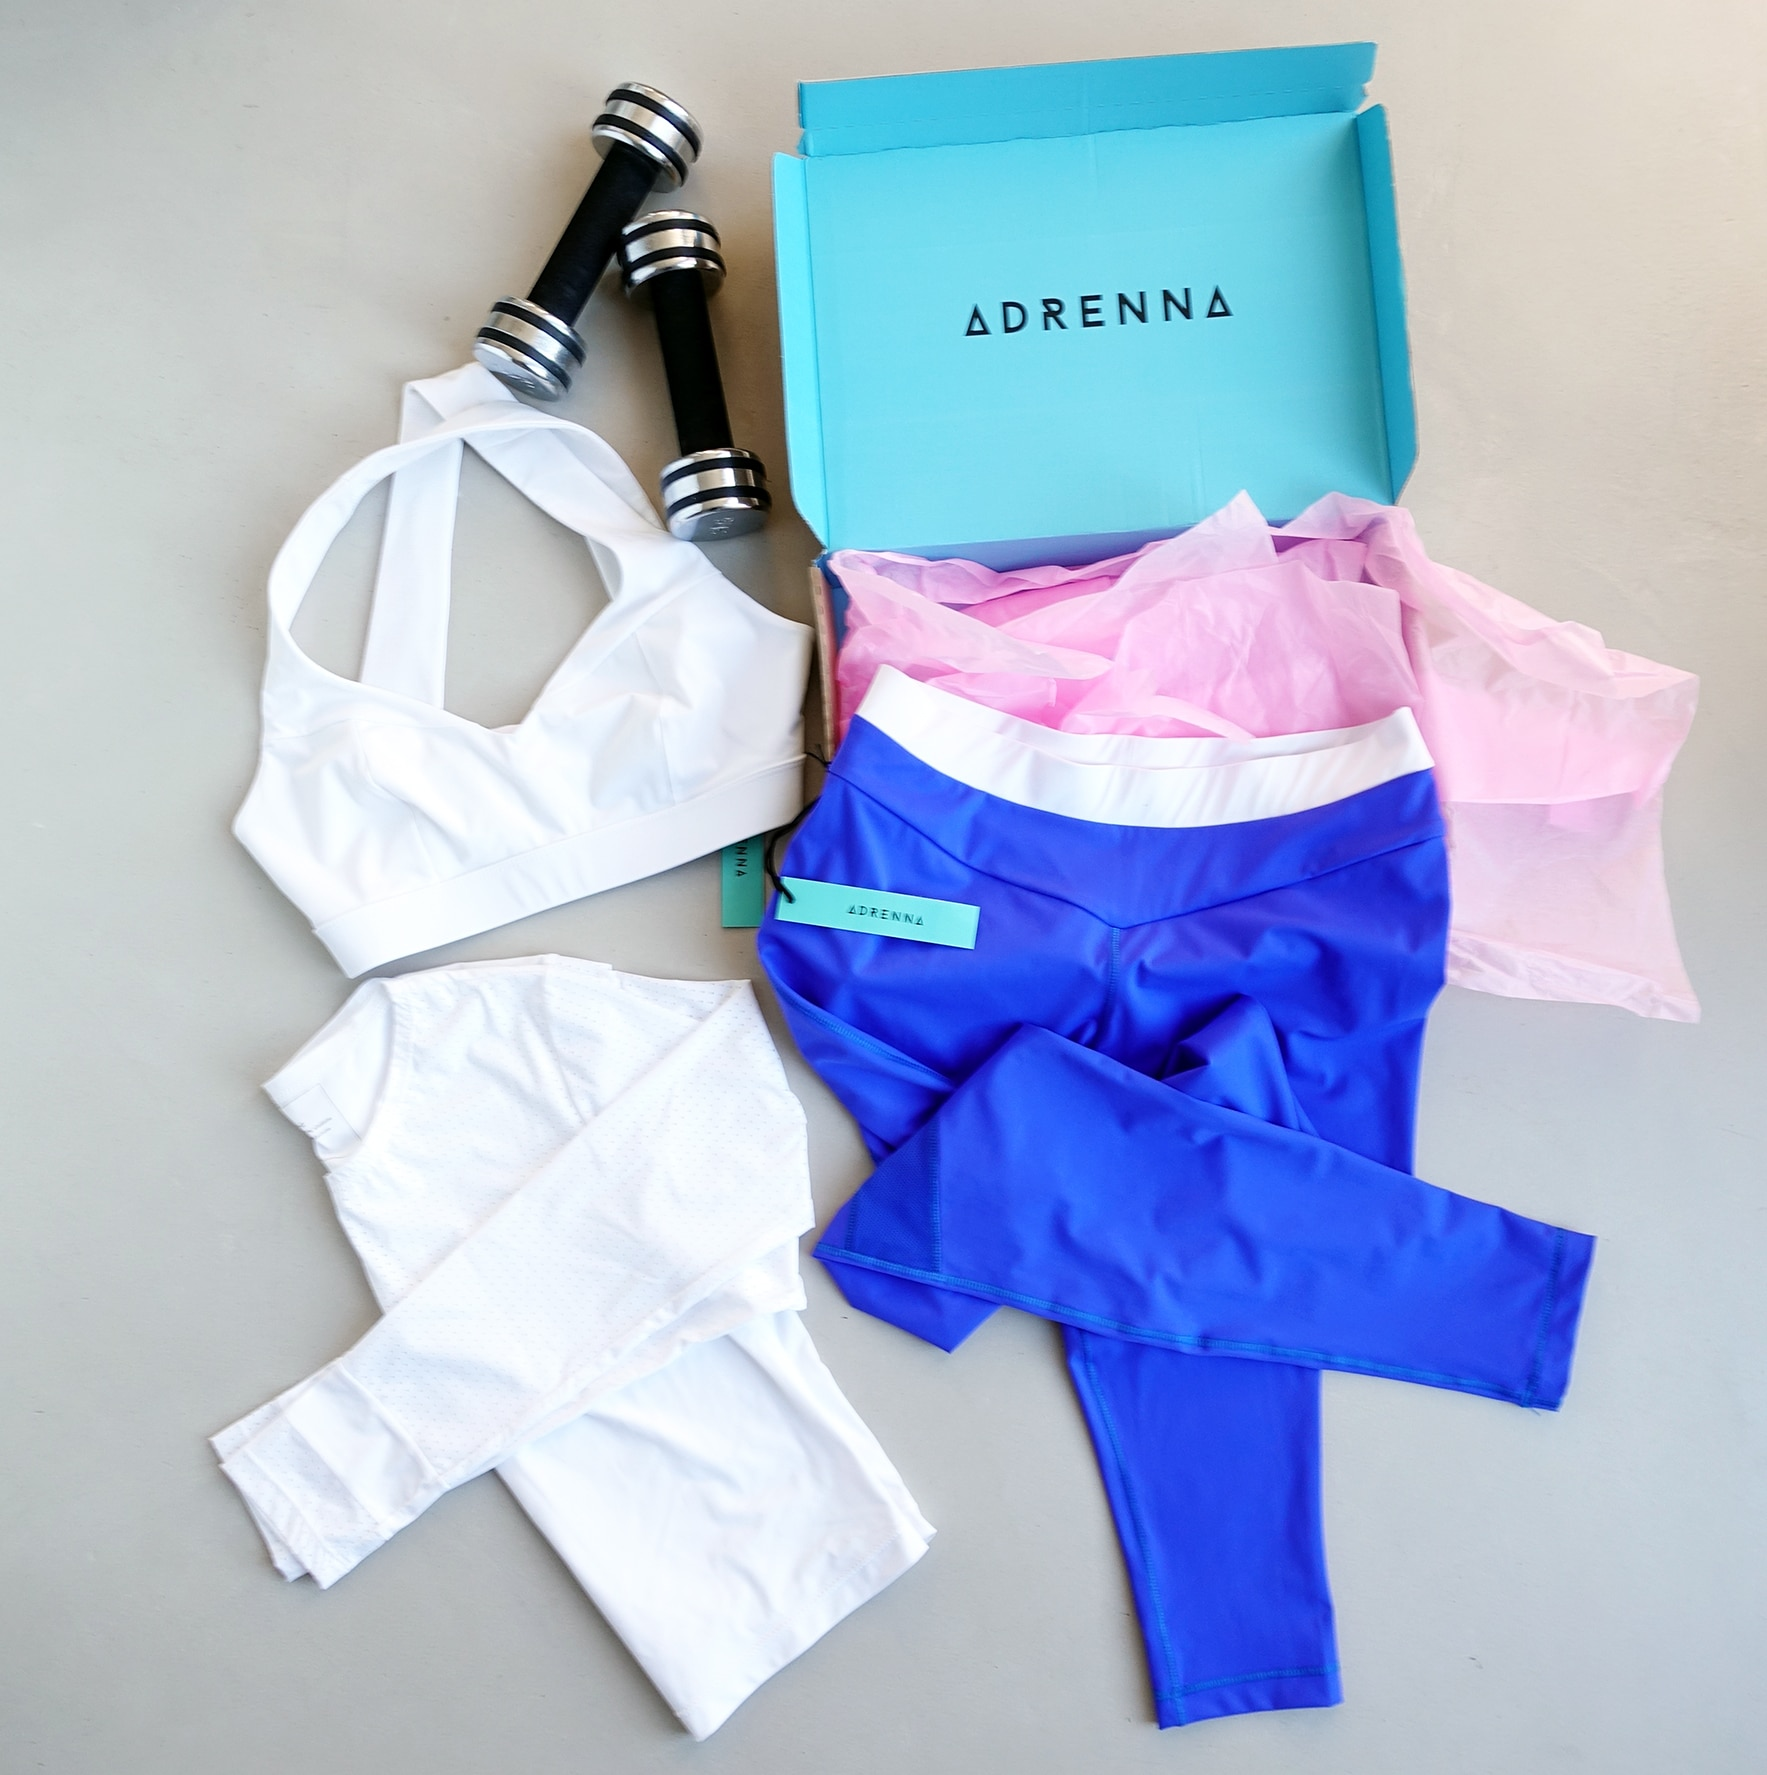 NEW DISCOVERY: A SUSTAINABLE SPORTSWEAR BRAND, ADRENNA